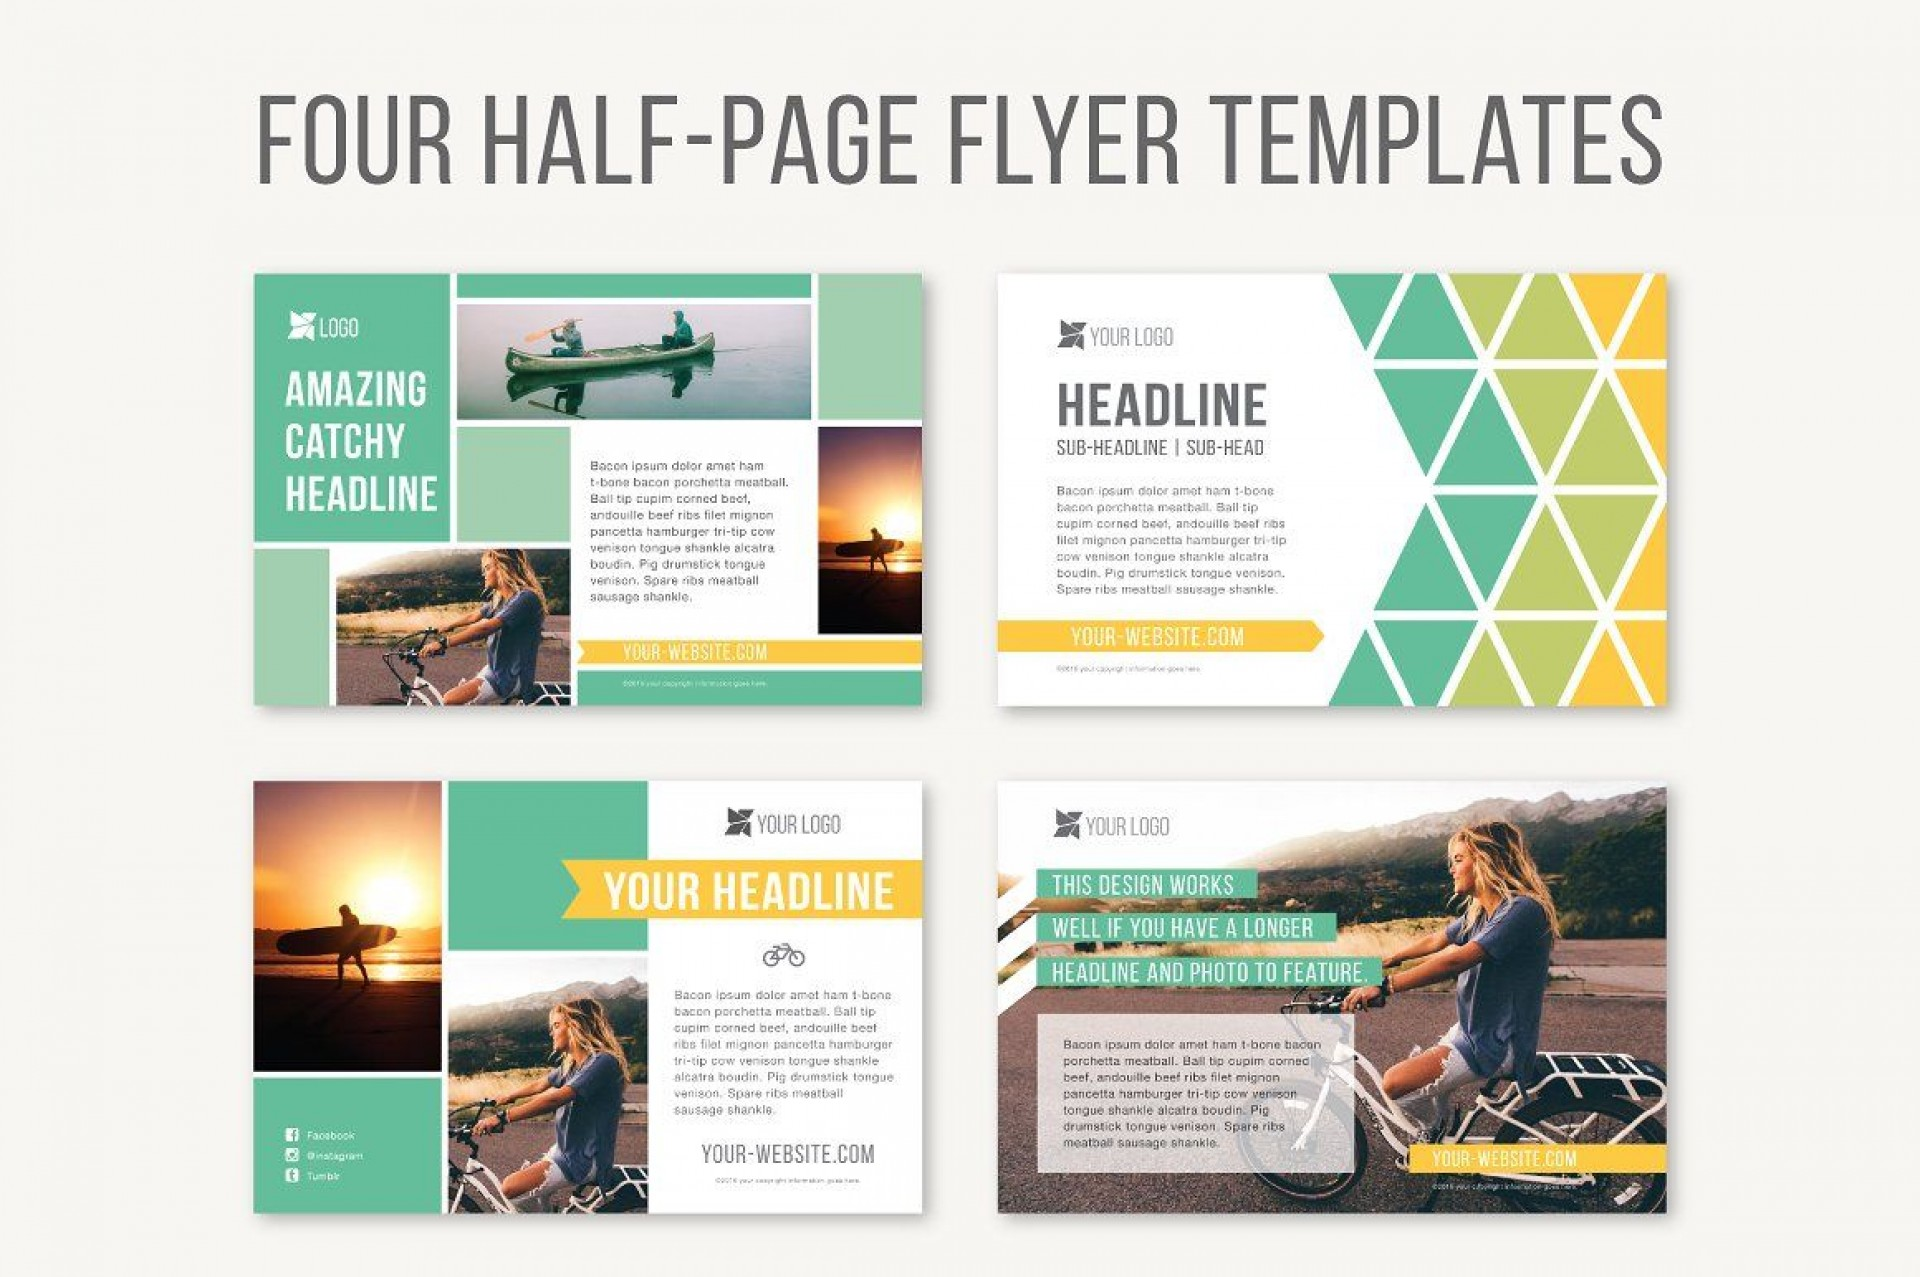 Half Sheet Flyer Template Four Page  Free Word Google Doc1920